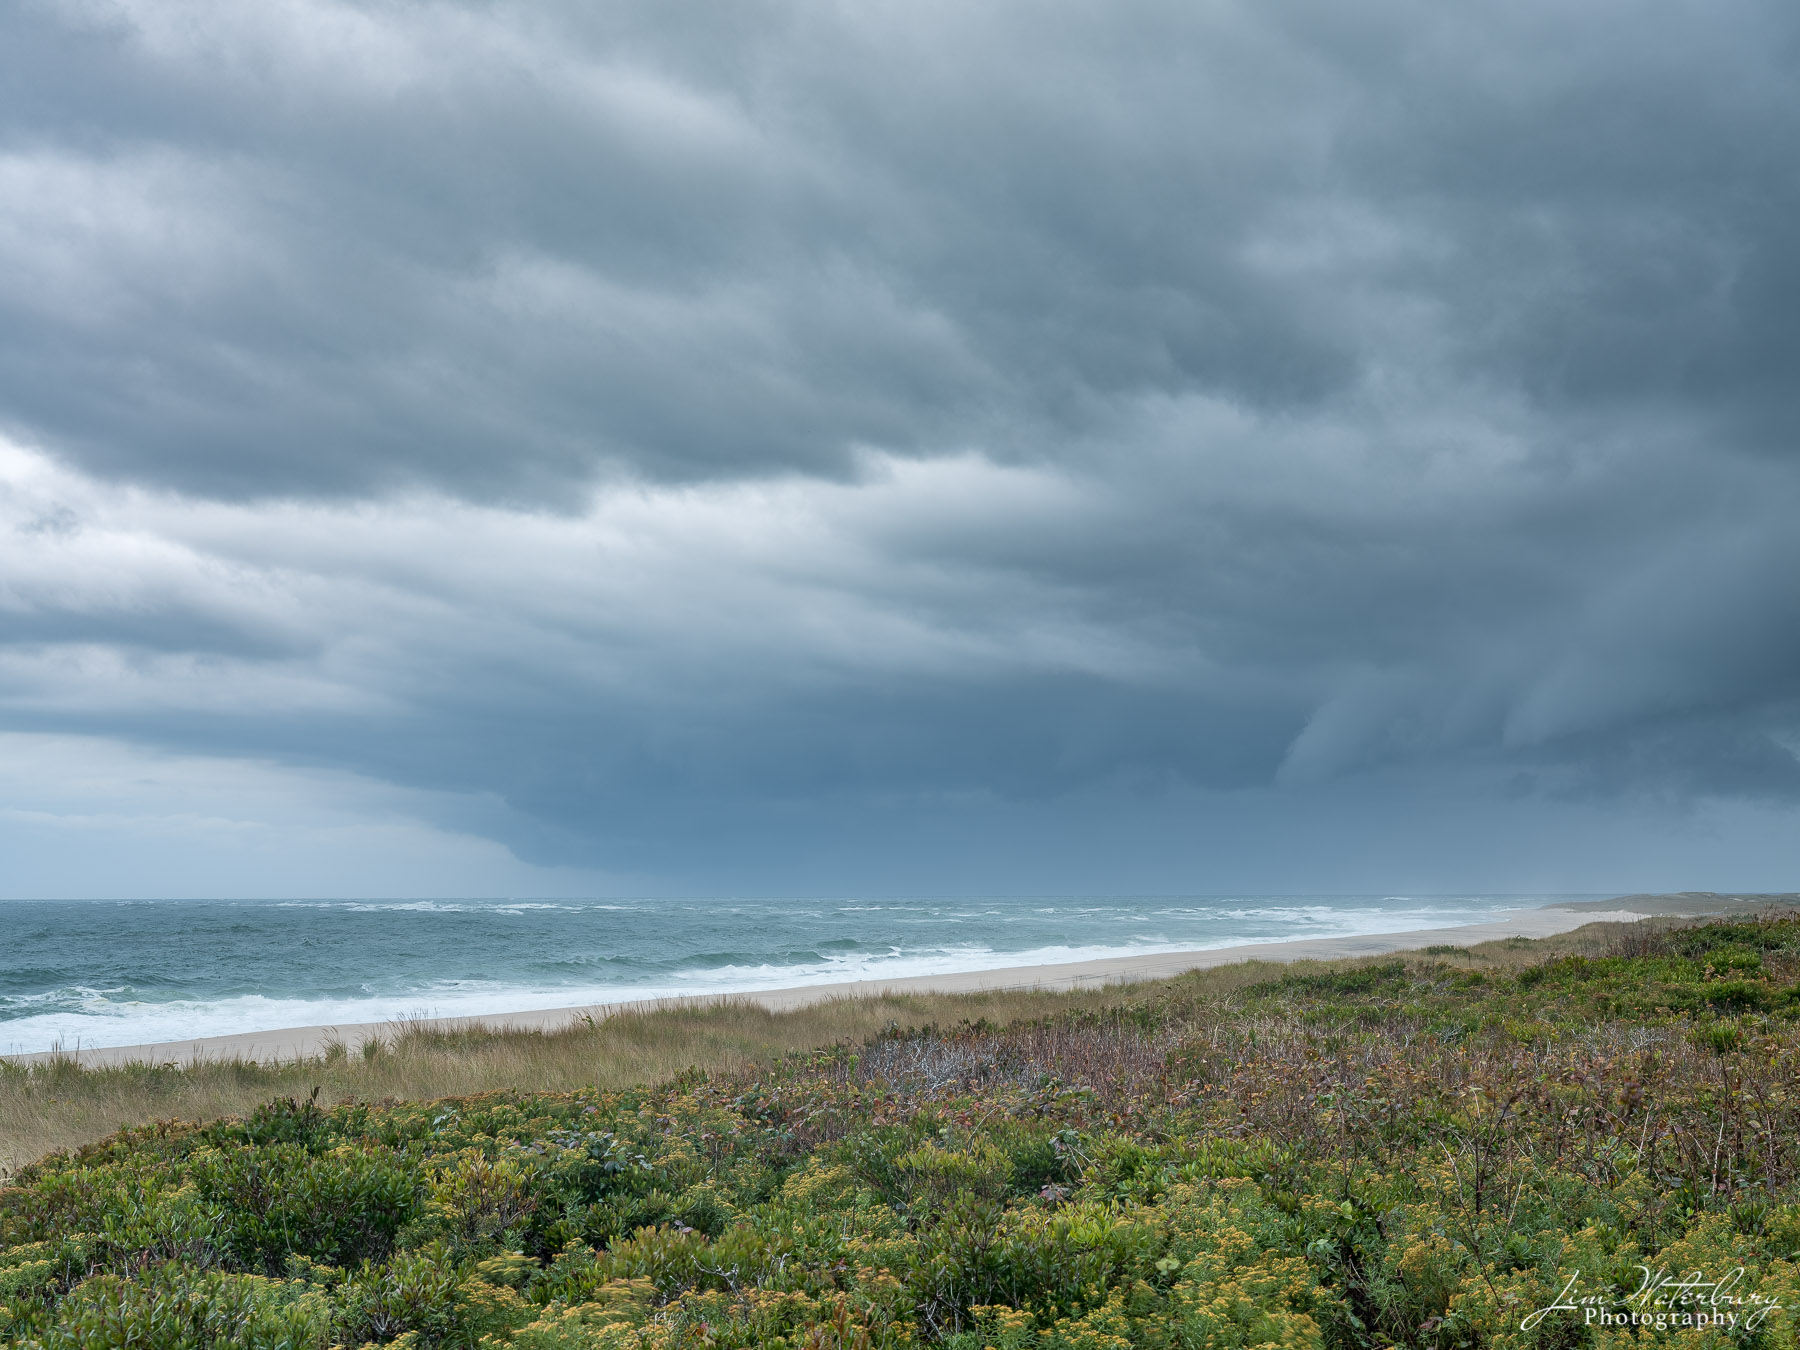 A view of the ocean from above the dunes, with a fall storm approaching from the west.